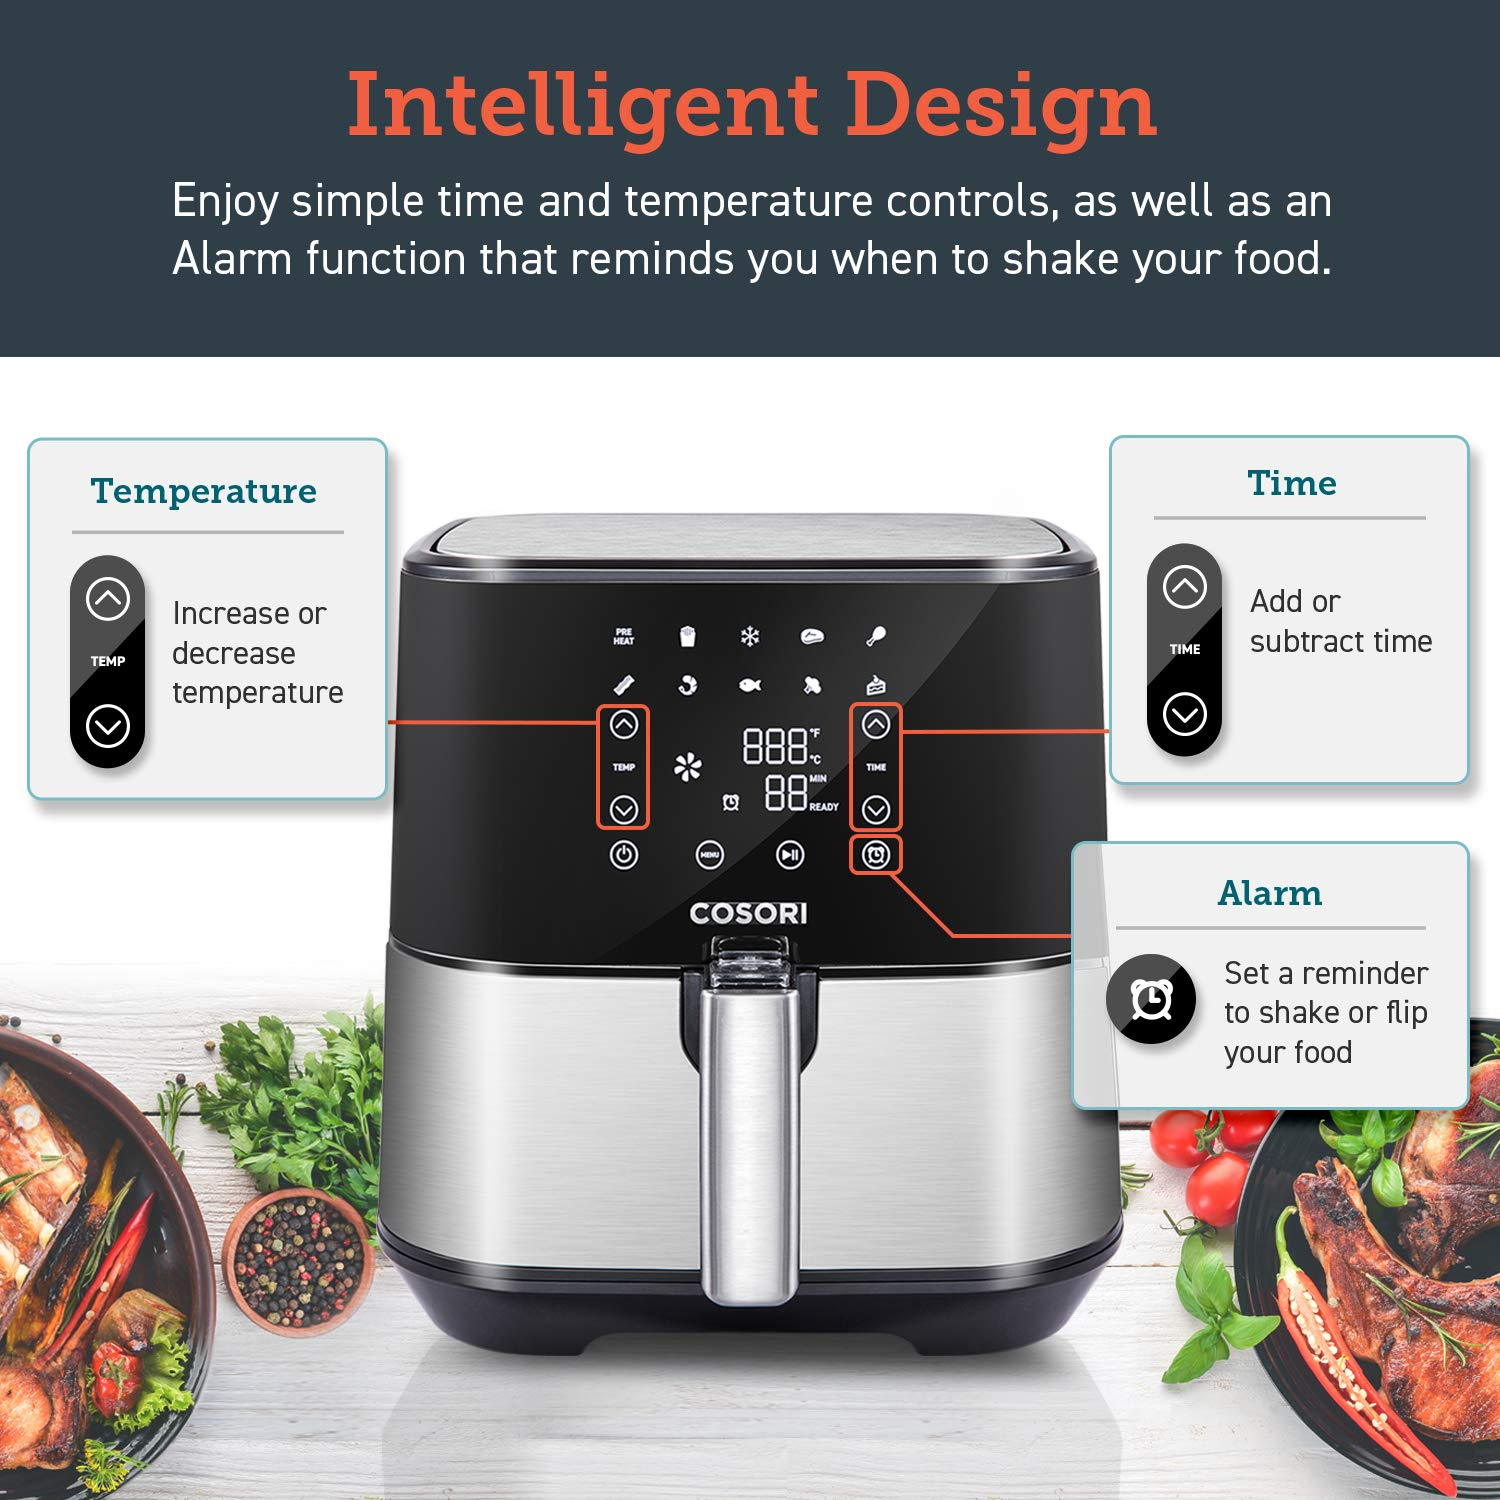 COSORI Stainless Steel Air Fryer (100 Recipes, Rack & 5 Skewers), 5.8Qt Large Air Fryers XL Oven Oilless Cooker, Preheat/Alarm Reminder, 9 Presets, Nonstick Basket, 2-Year Warranty, ETL/UL Listed by COSORI (Image #5)